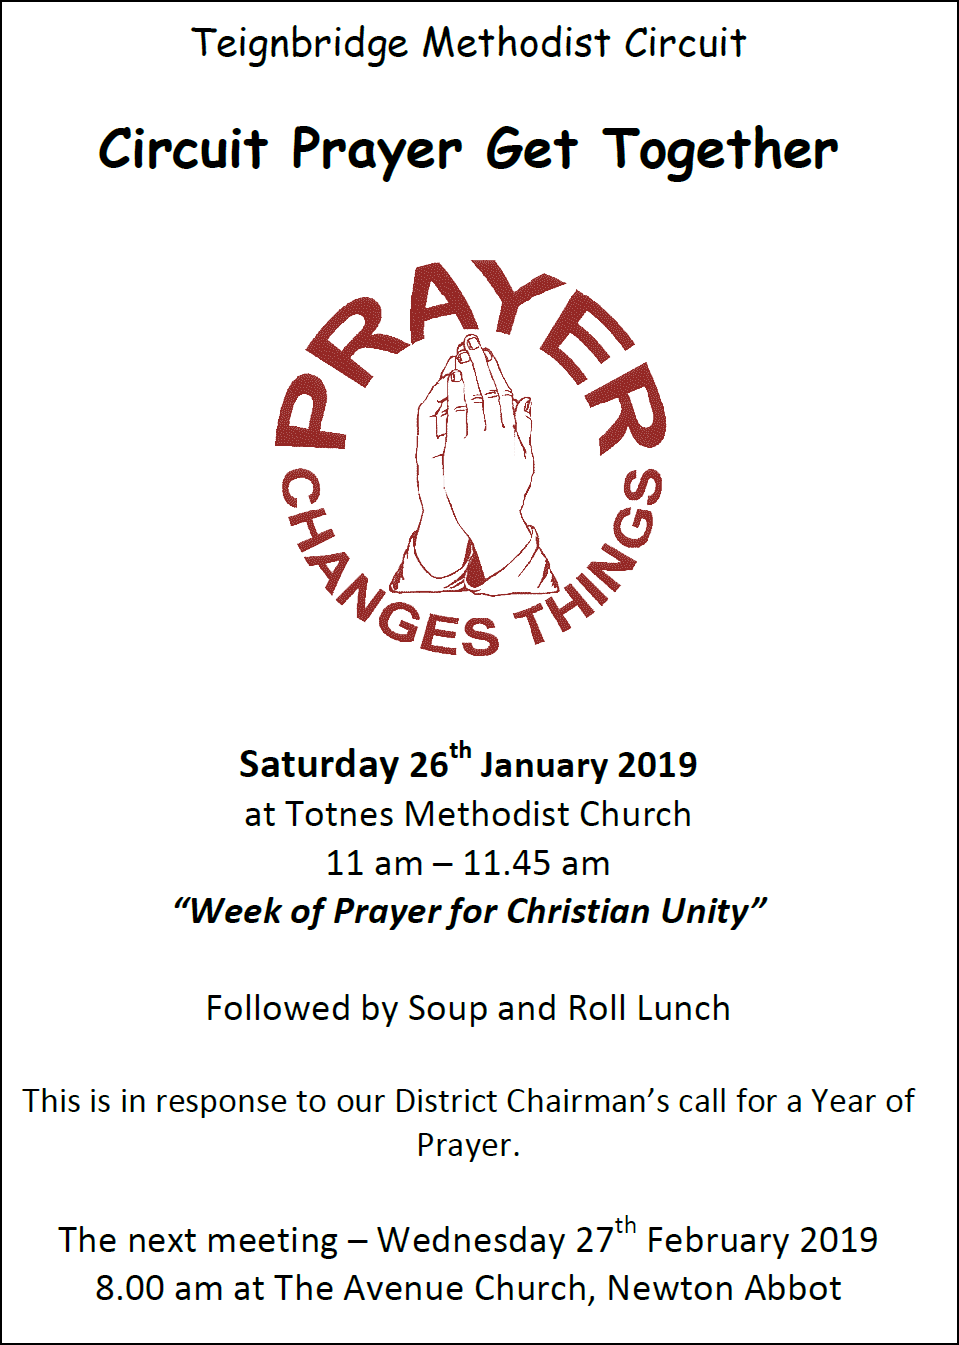 Circuit Prayer Get-Together @ Totnes Methodist Church